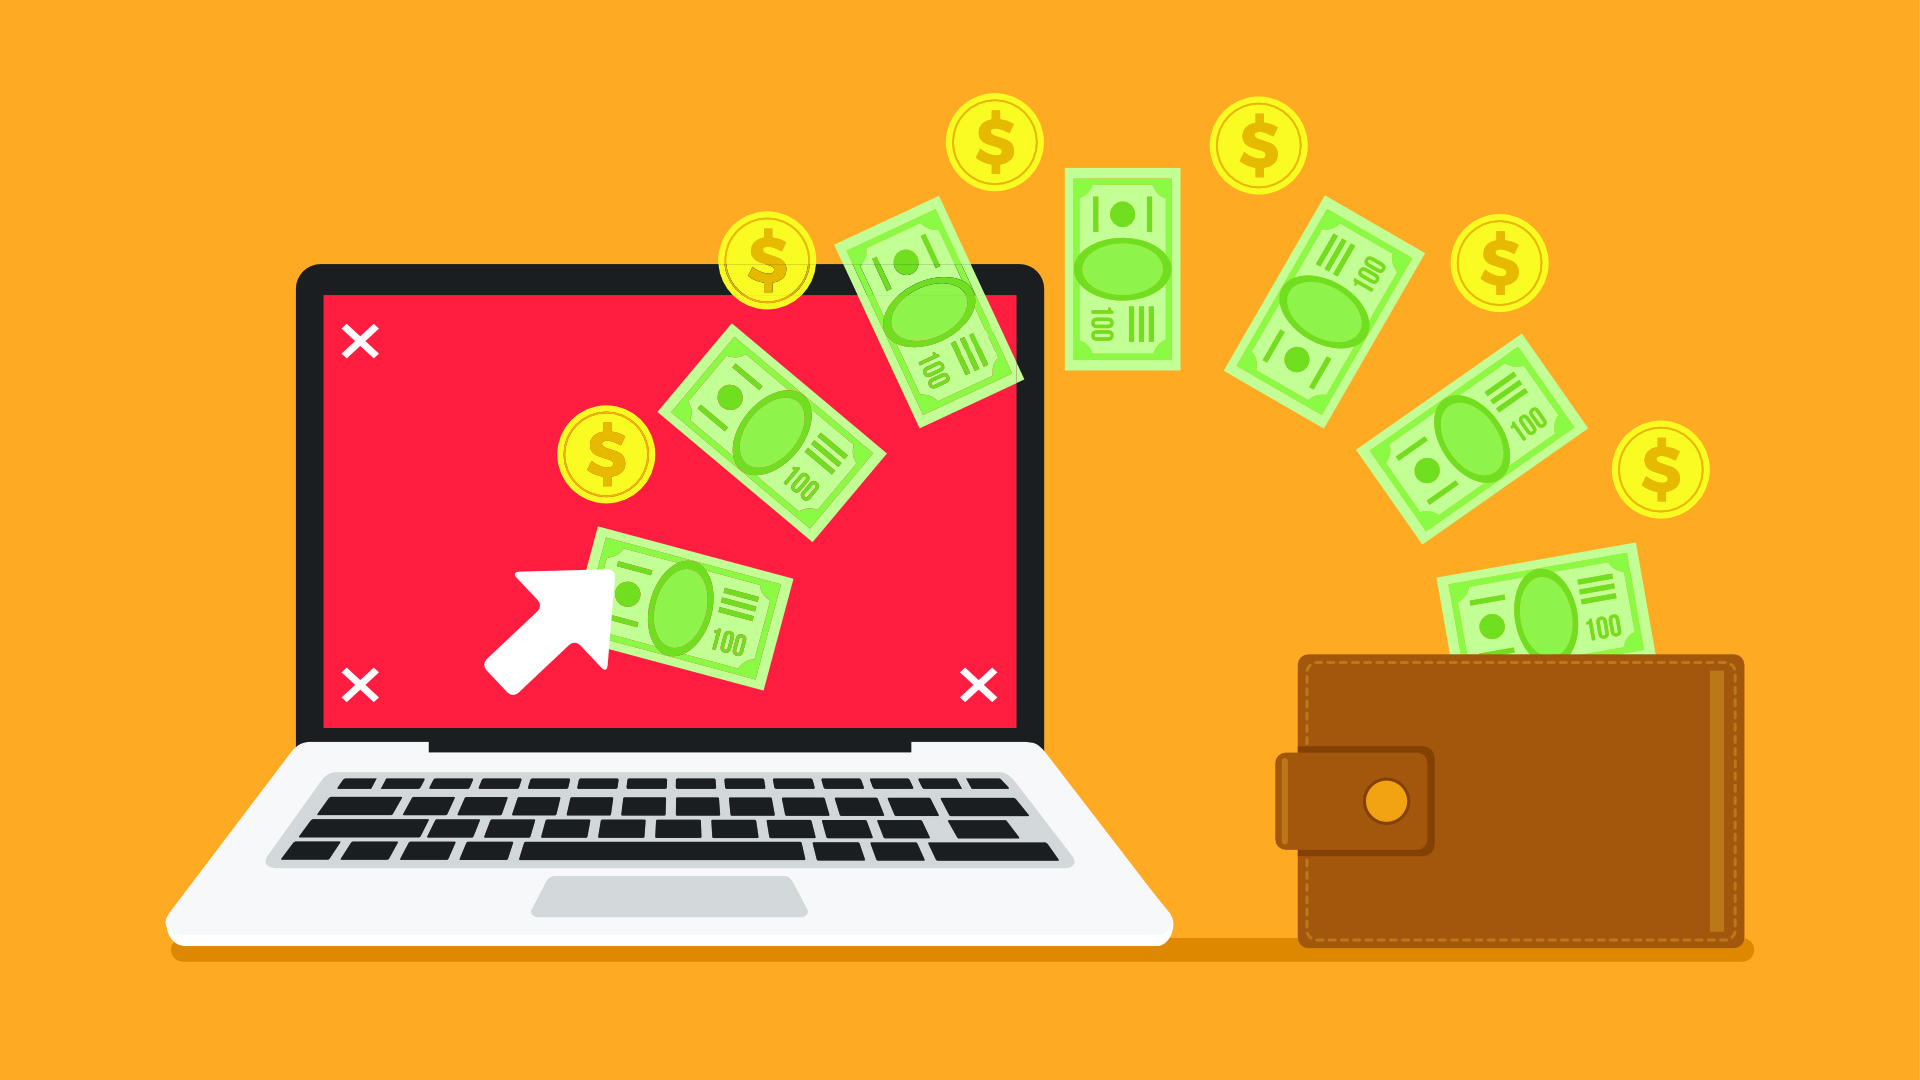 How To Make Passive Income - 7 Proven Ways No Upfront Cost